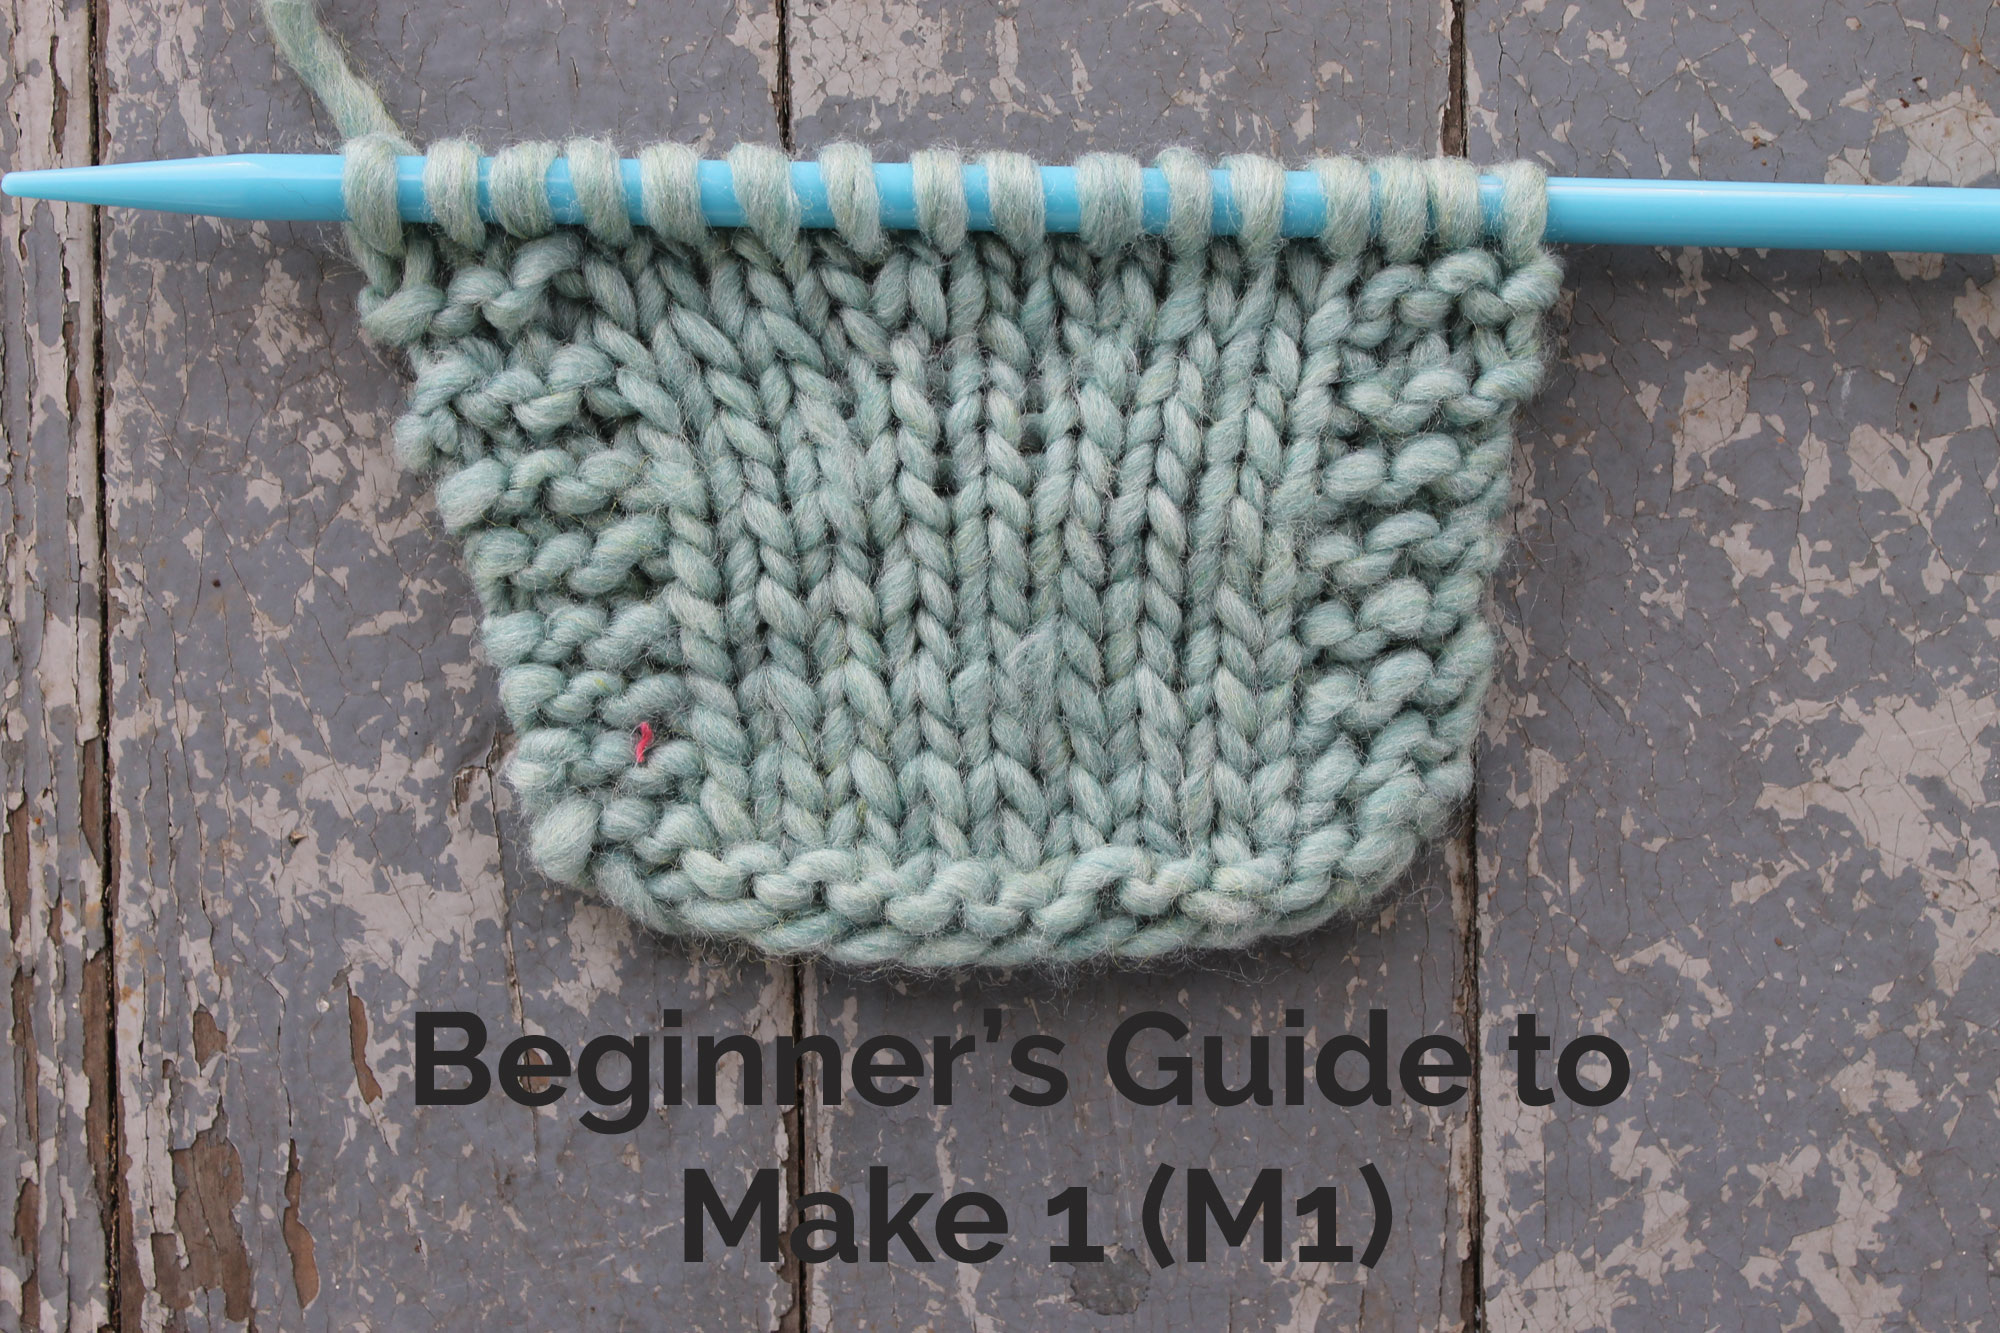 Beginner's Guide to Make One Knitting